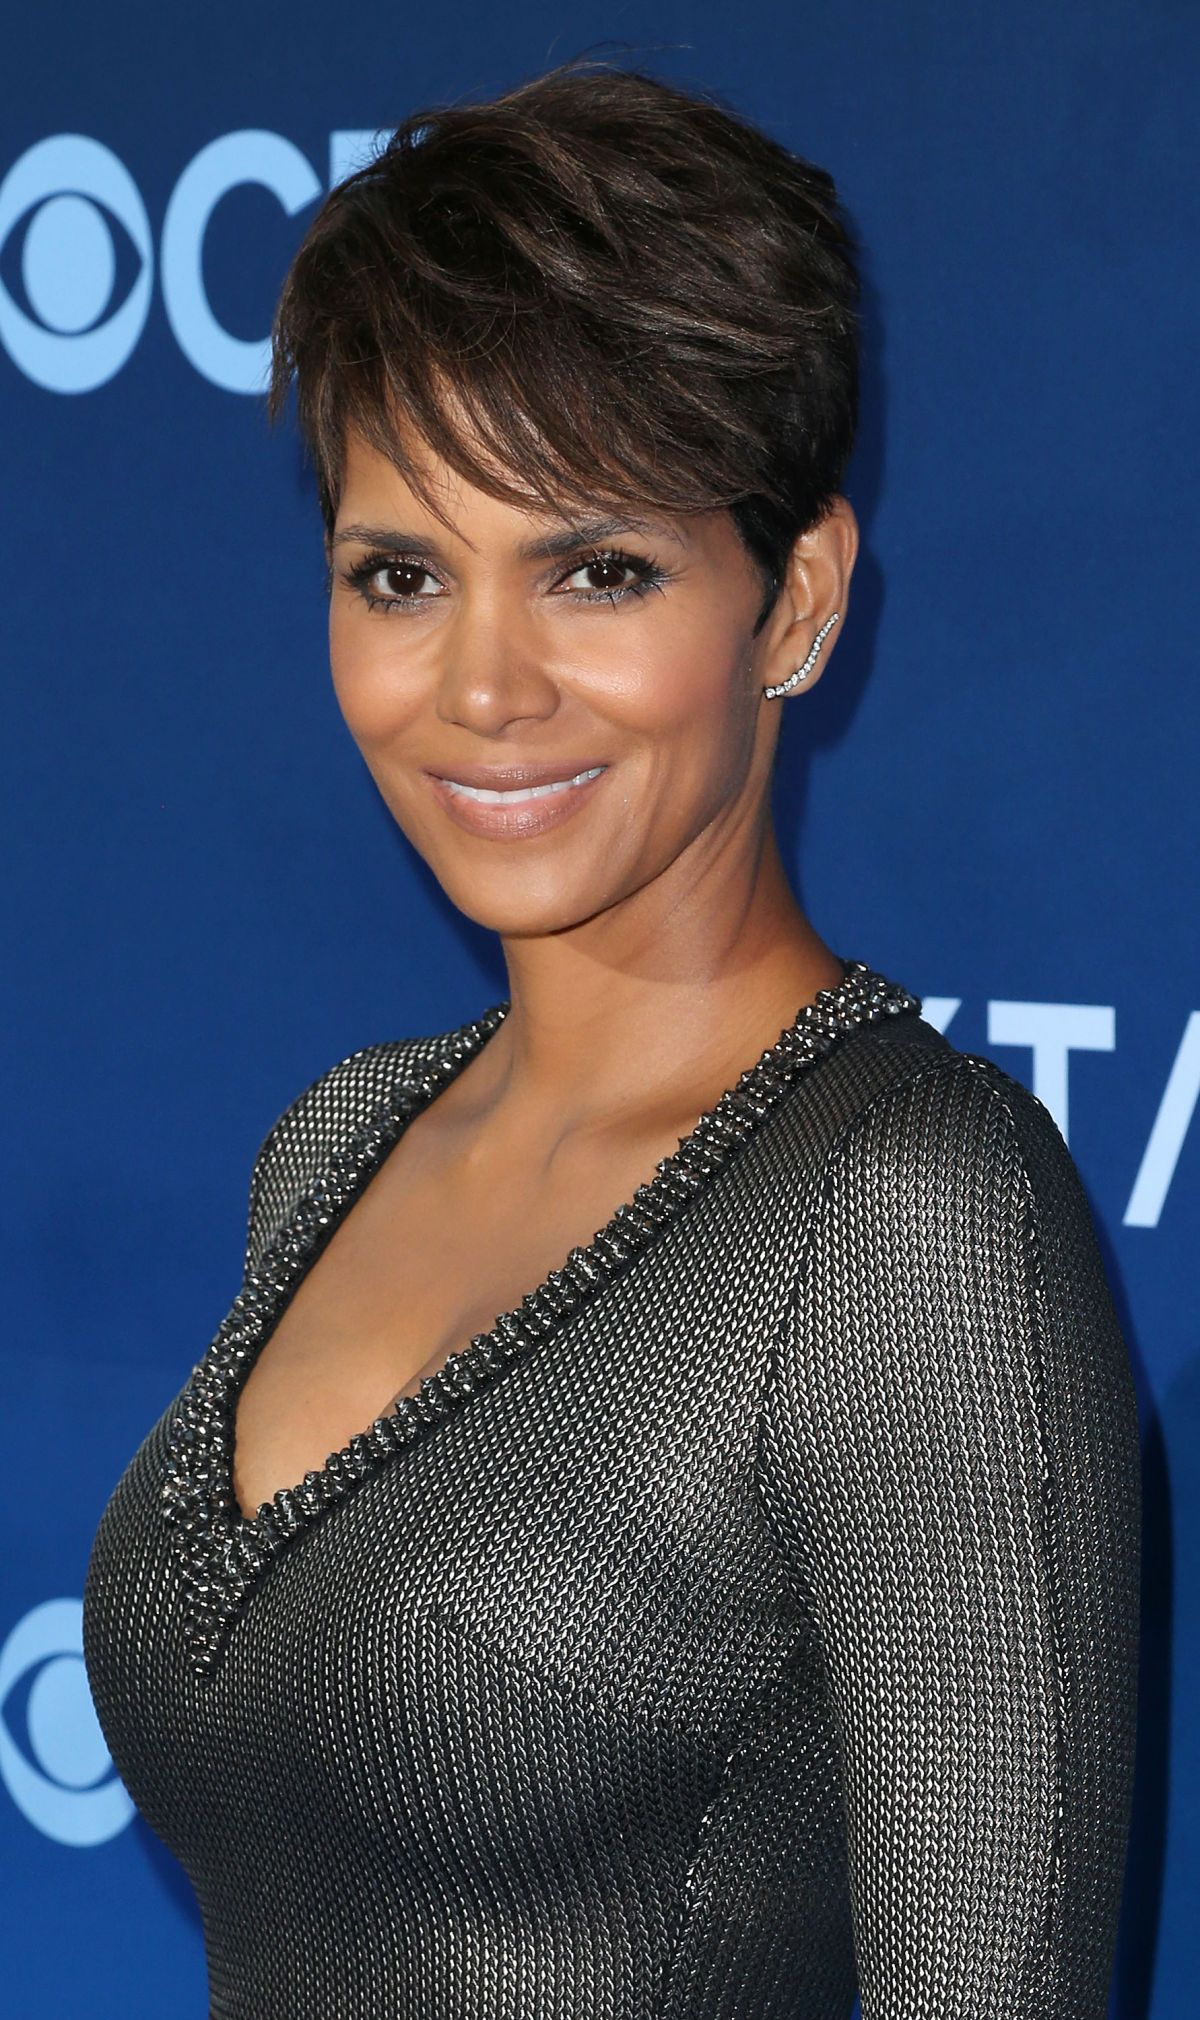 HALLE BERRY at Extant Premiere in Los Angeles - HawtCelebs ...